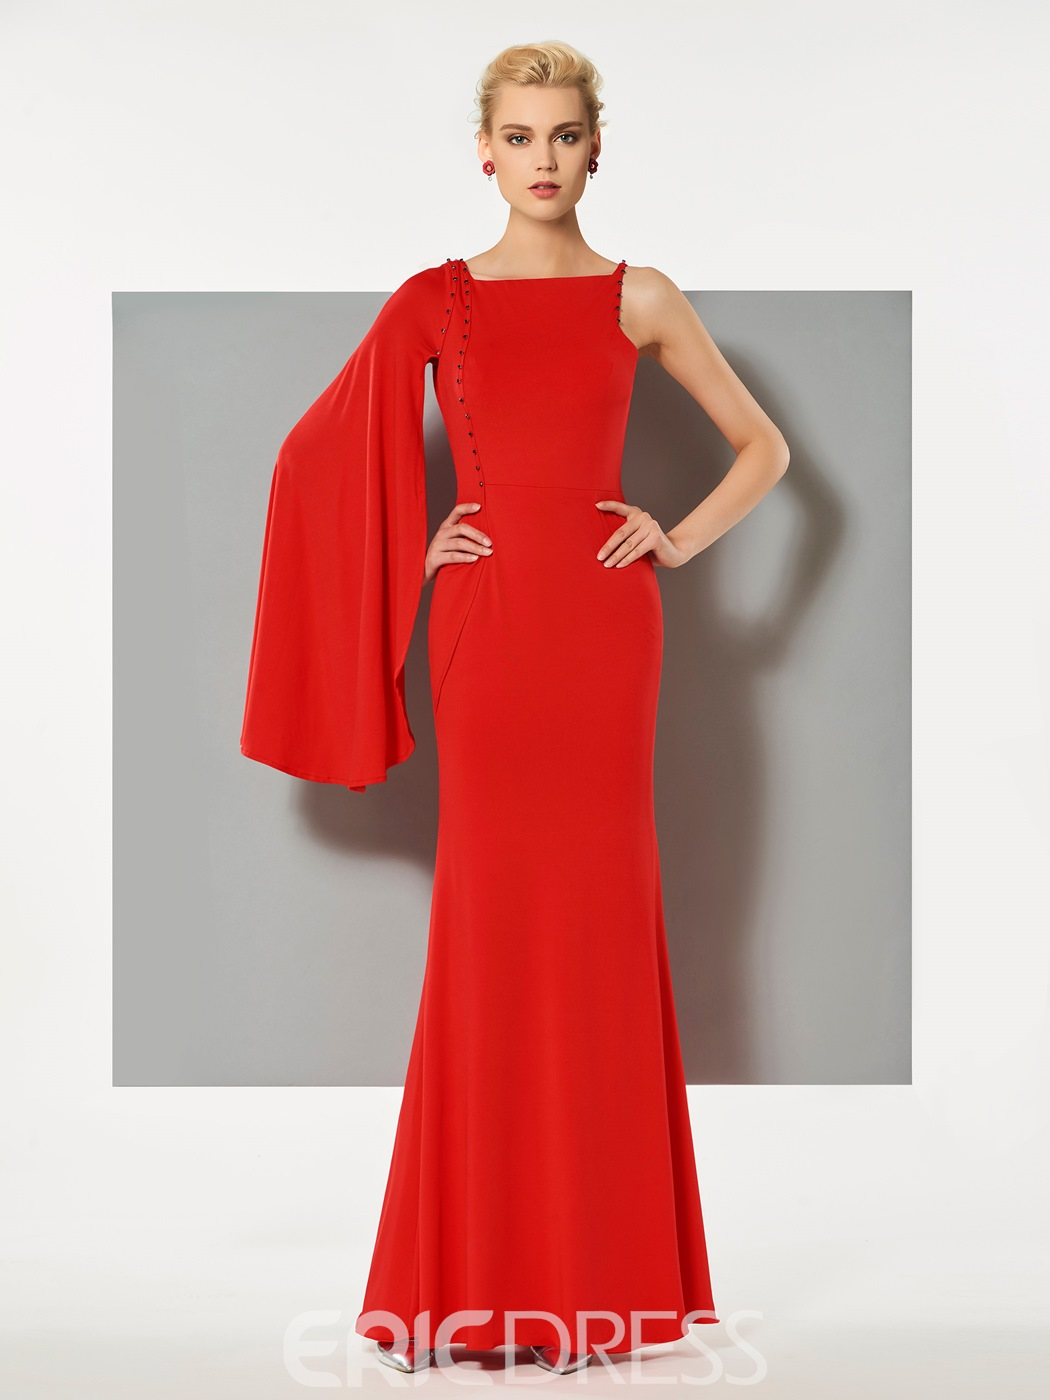 Ericdress Designer Sheath One Sleeve Floor Length Evening Dress